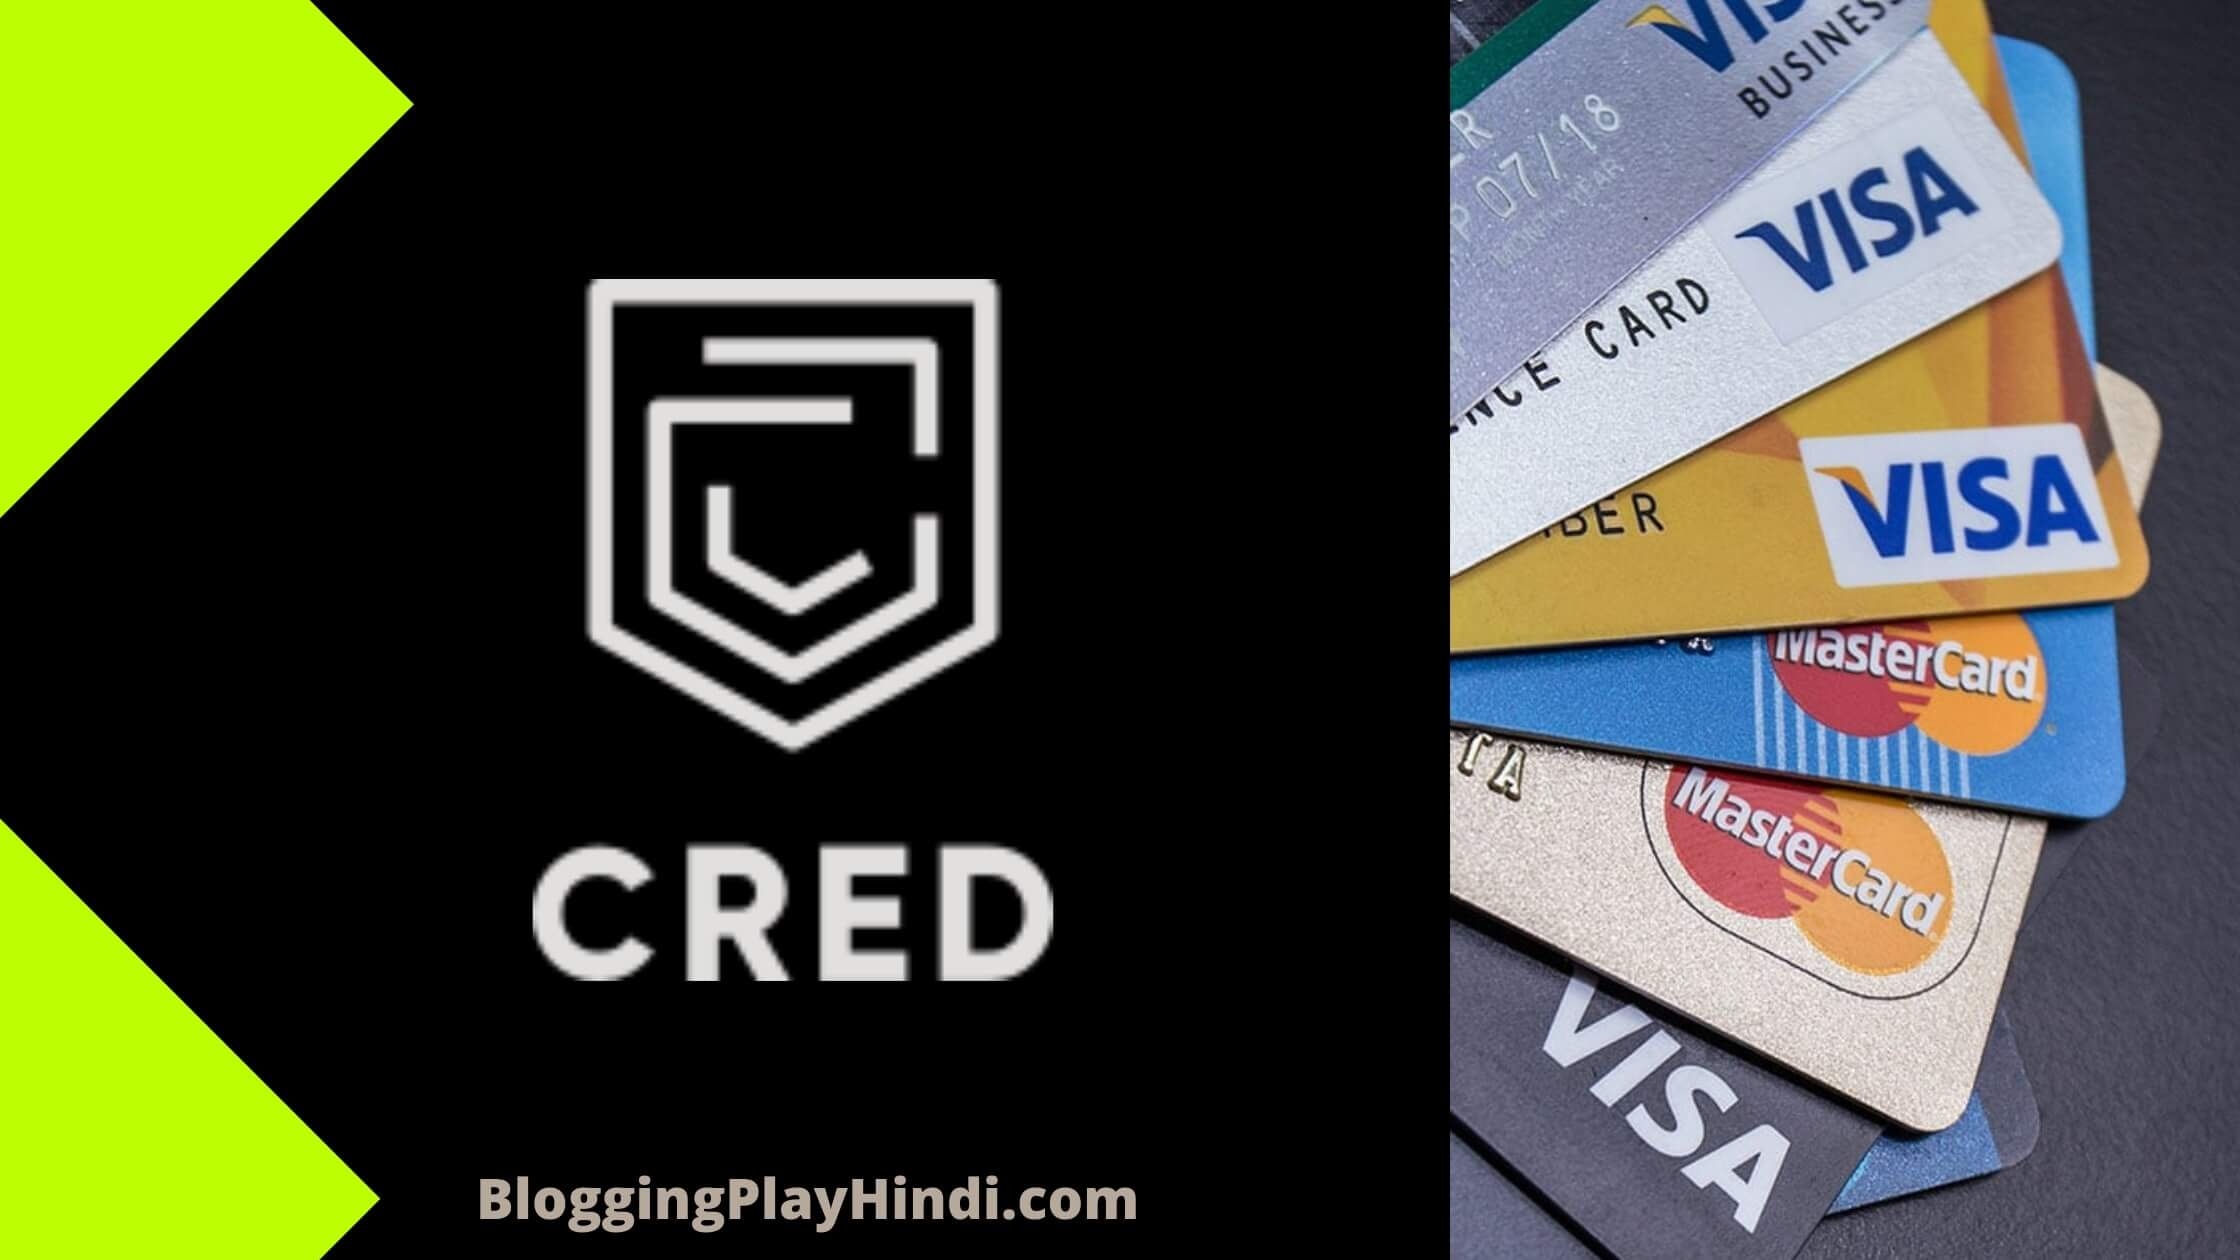 CRED Business Model